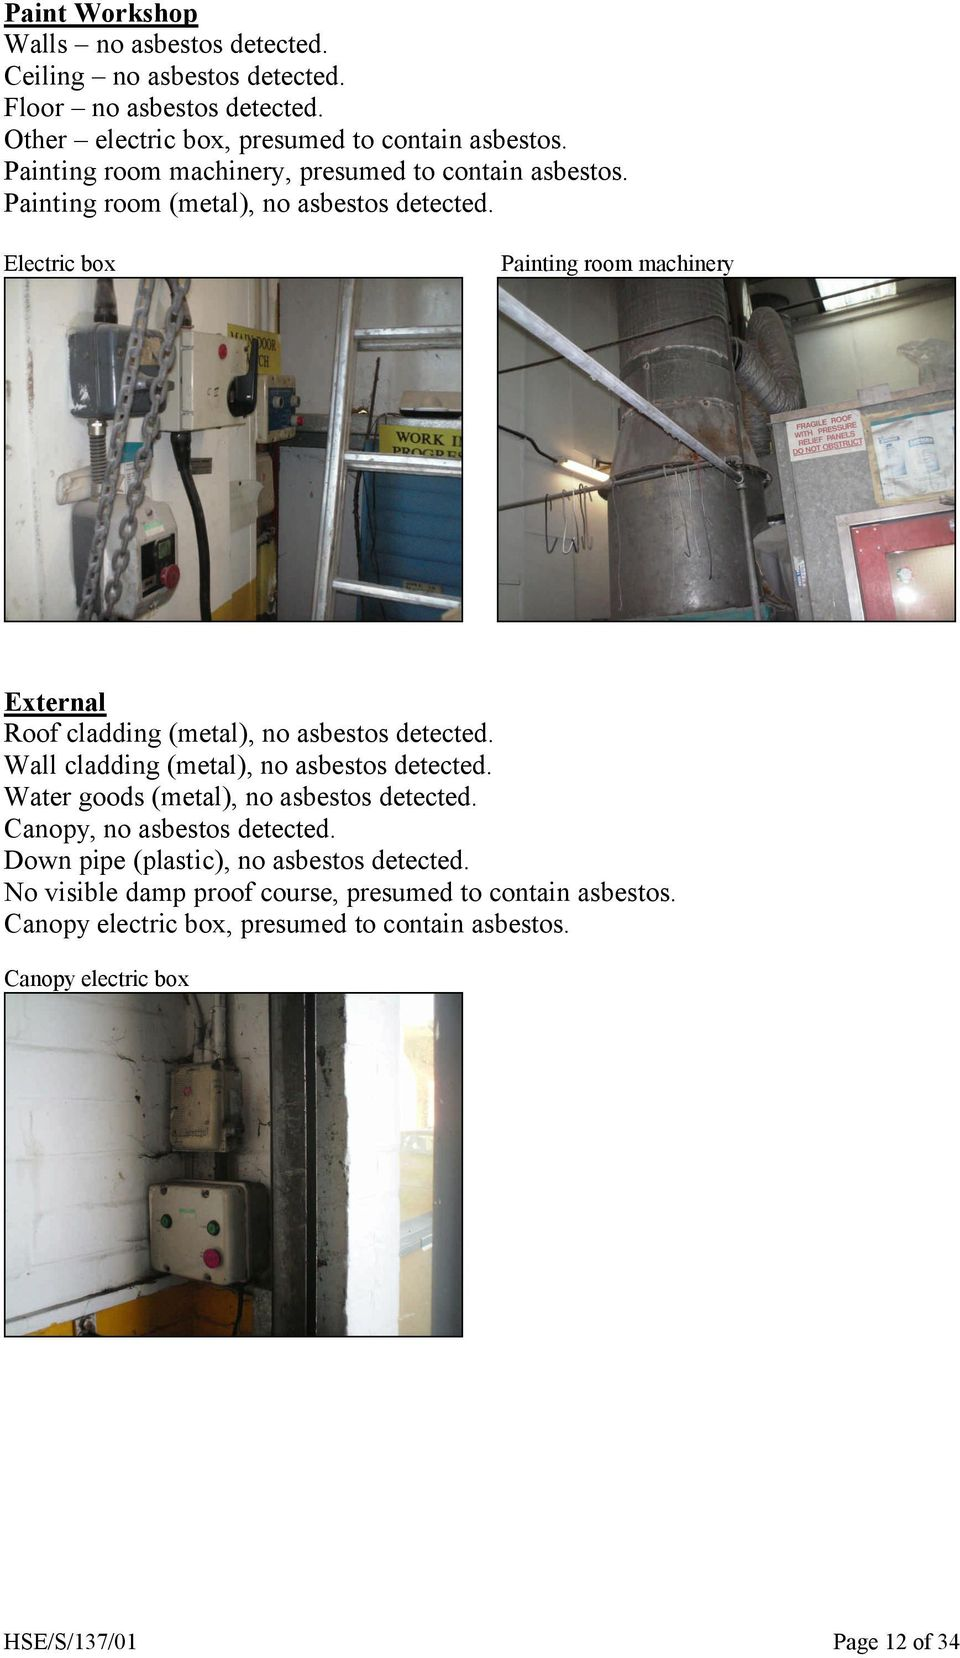 Wall cladding (metal), no asbestos detected. Water goods (metal), no asbestos detected. Canopy, no asbestos detected.